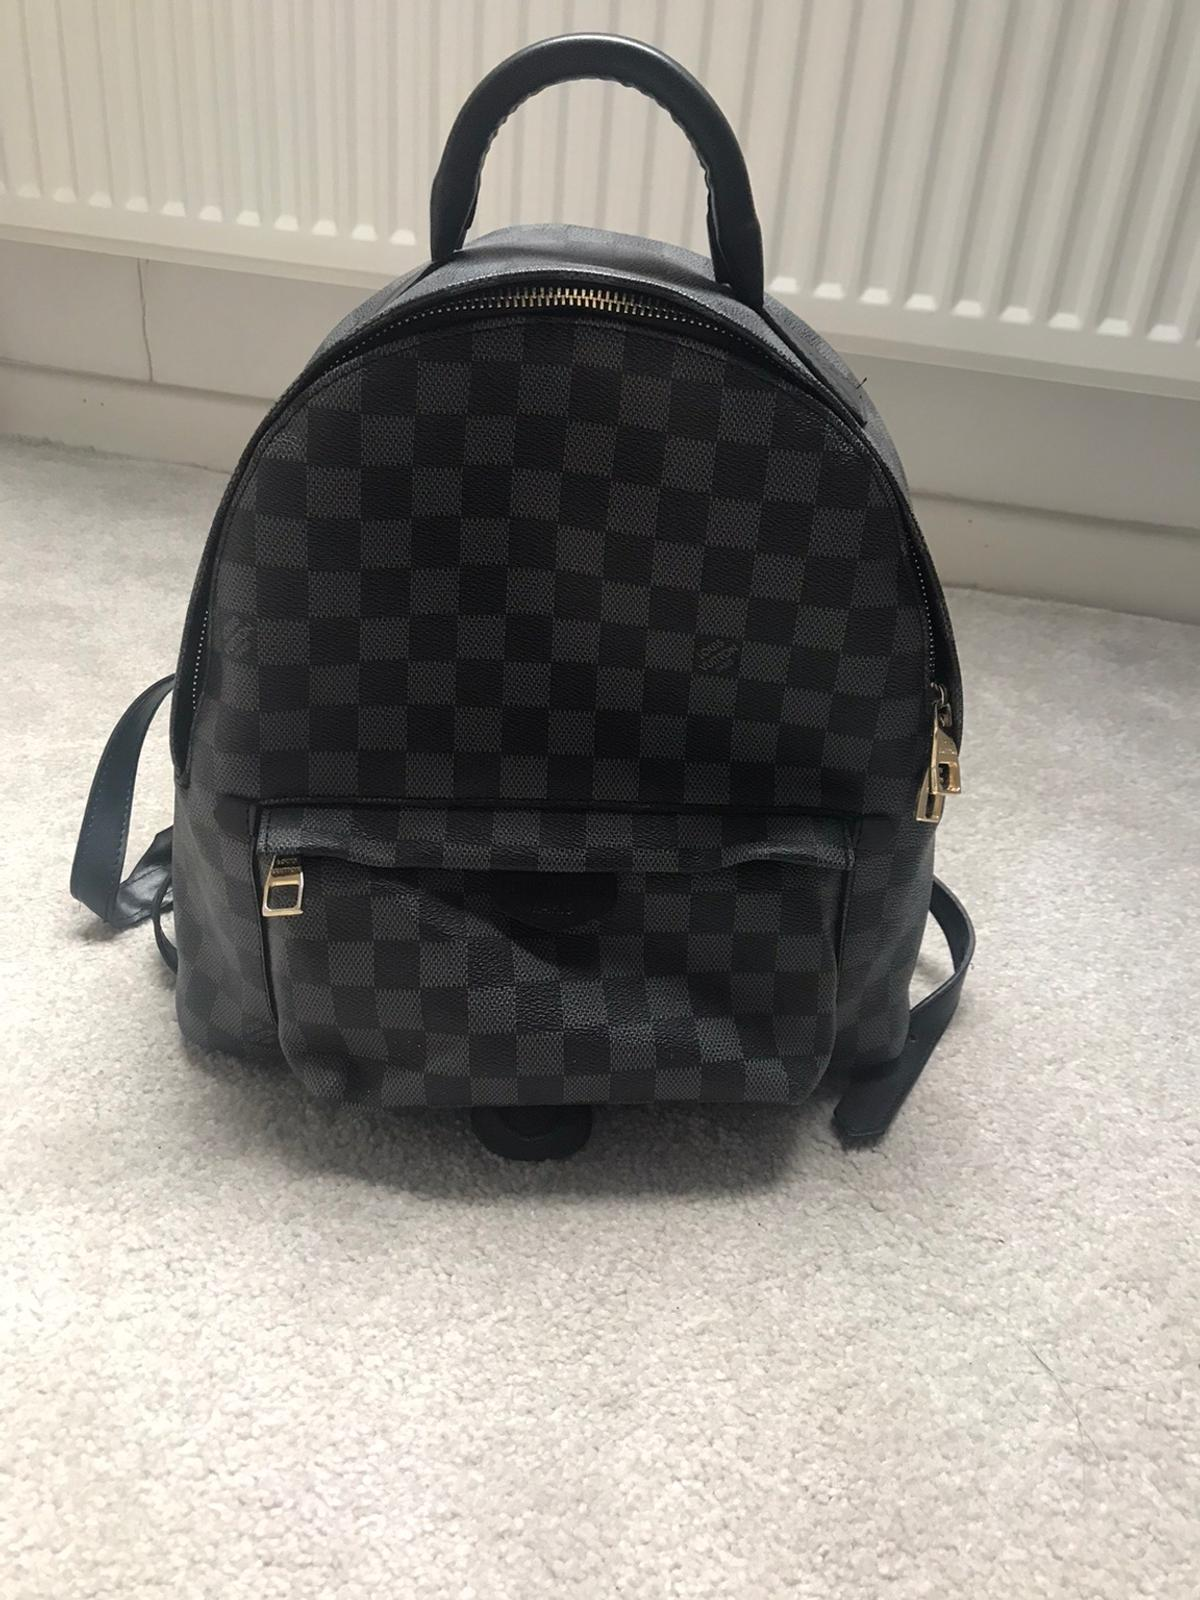 Same as LV backpack brand new unwanted gift